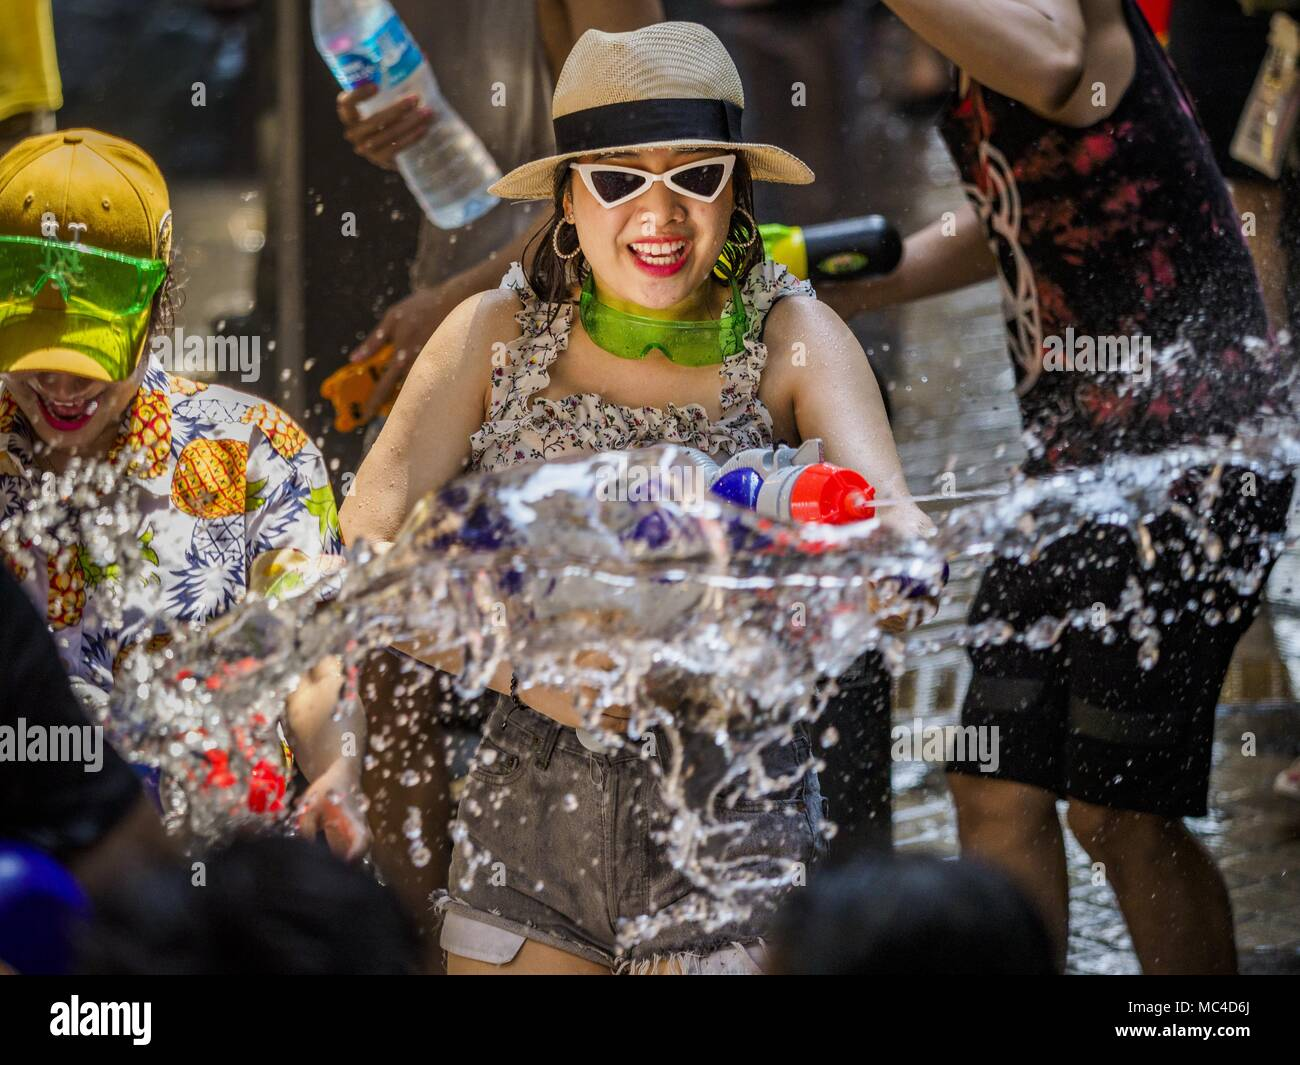 Bangkok, Bangkok, Thailand. 13th Apr, 2018. A woman walks through a water fight on Silom Road during the first day of Songkran in Bangkok. Songkran is the traditional Thai New Year celebration best known for water fights. Credit: Jack Kurtz/ZUMA Wire/Alamy Live News - Stock Image